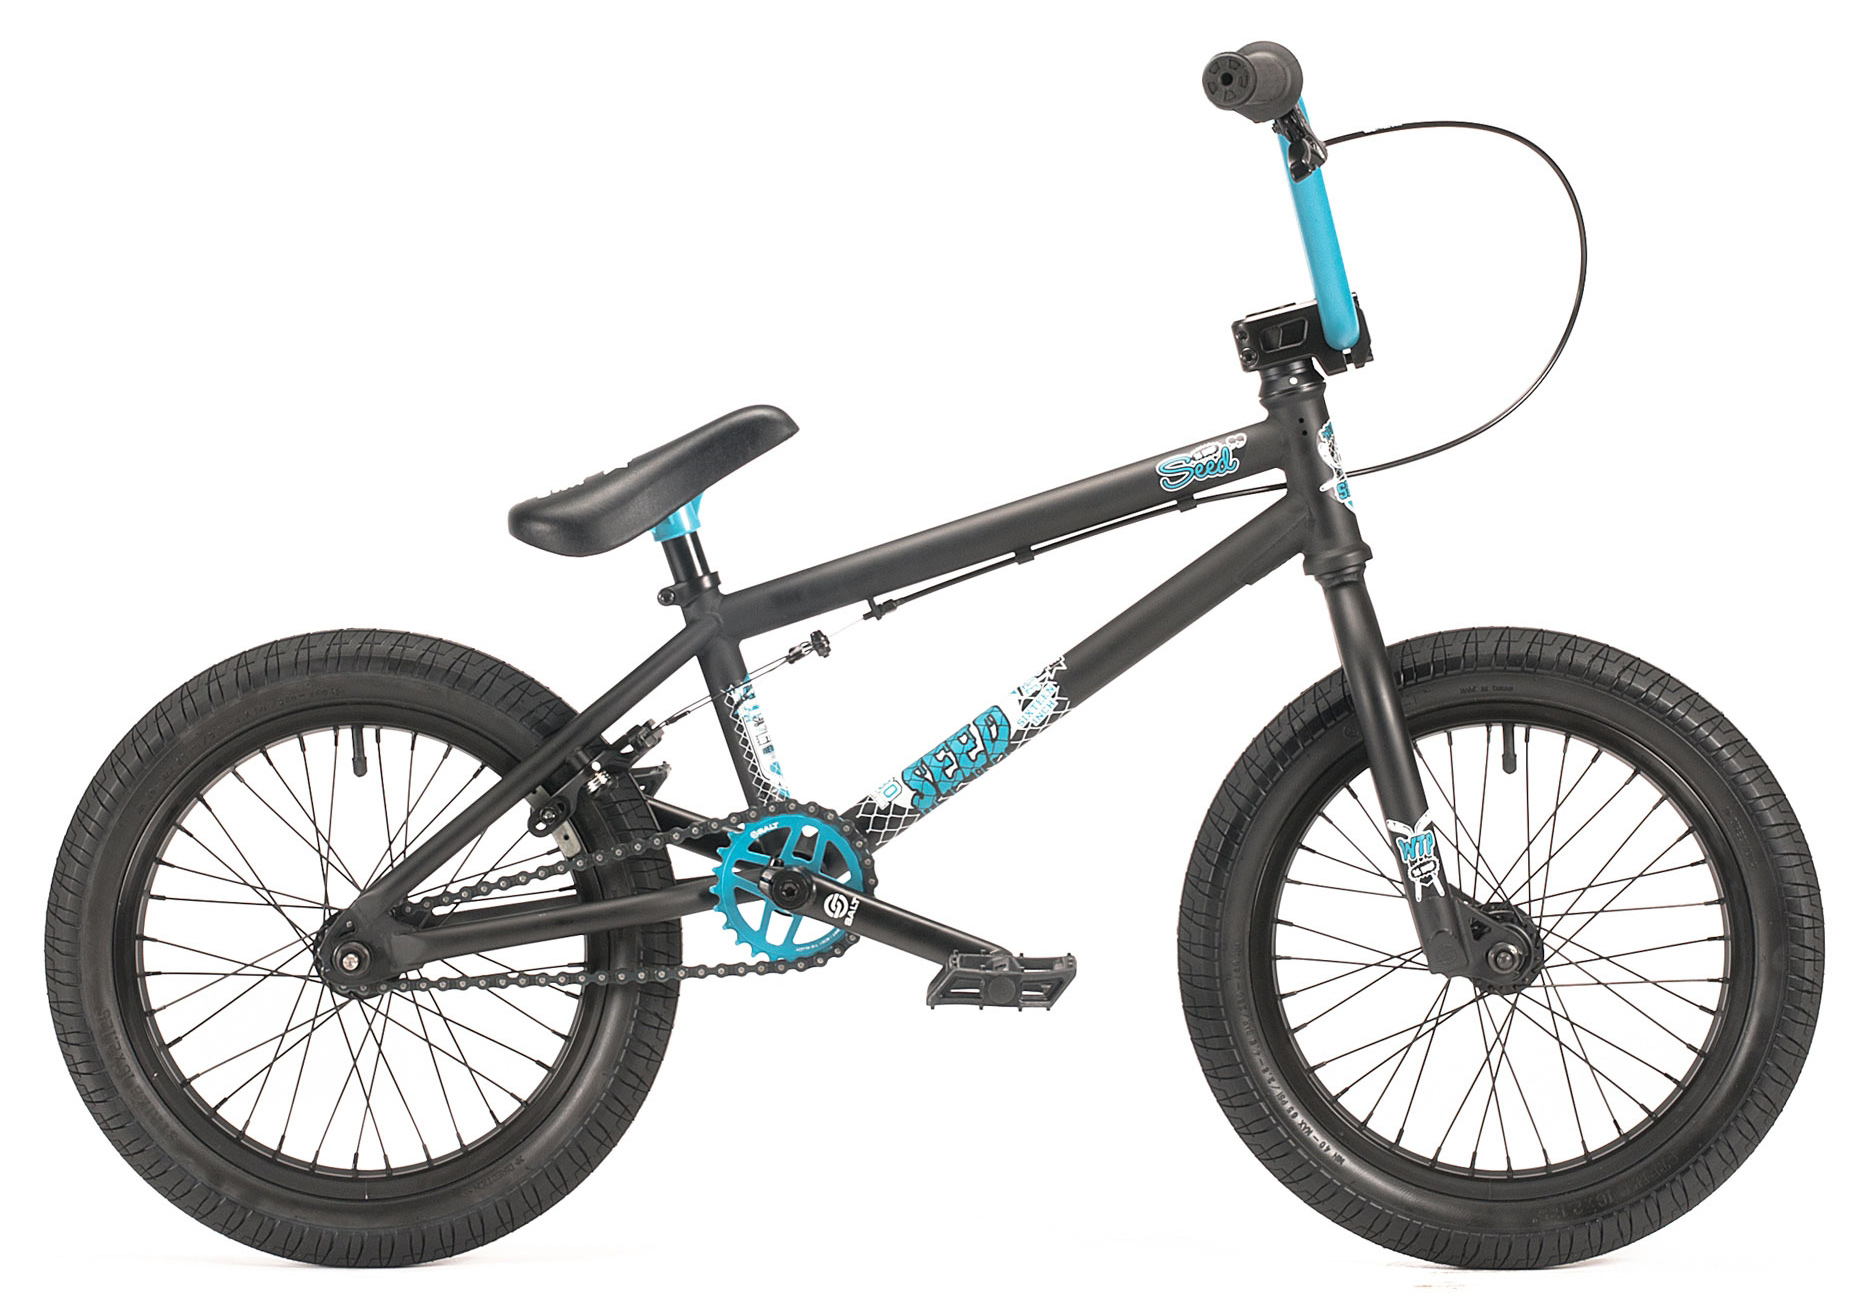 "BMX The Seed is not your average 'kids' bike. It comes w/ 25t/10t gearing, SALT junior nylon/fiberglass pedals and a SALT 'kid' sized brake lever. We added a 3/8"" rear axle, and single walled 32 hole rims as well. You'll also notice the Seed comes w/ an integrated headset, a full SB cassette hub, a short offset stem, and our new 2013 Arrow grips. Don't let your size get in the way of all the fun a WTP complete bike can offer, start today and work your way up when you're good and ready. - $379.99"